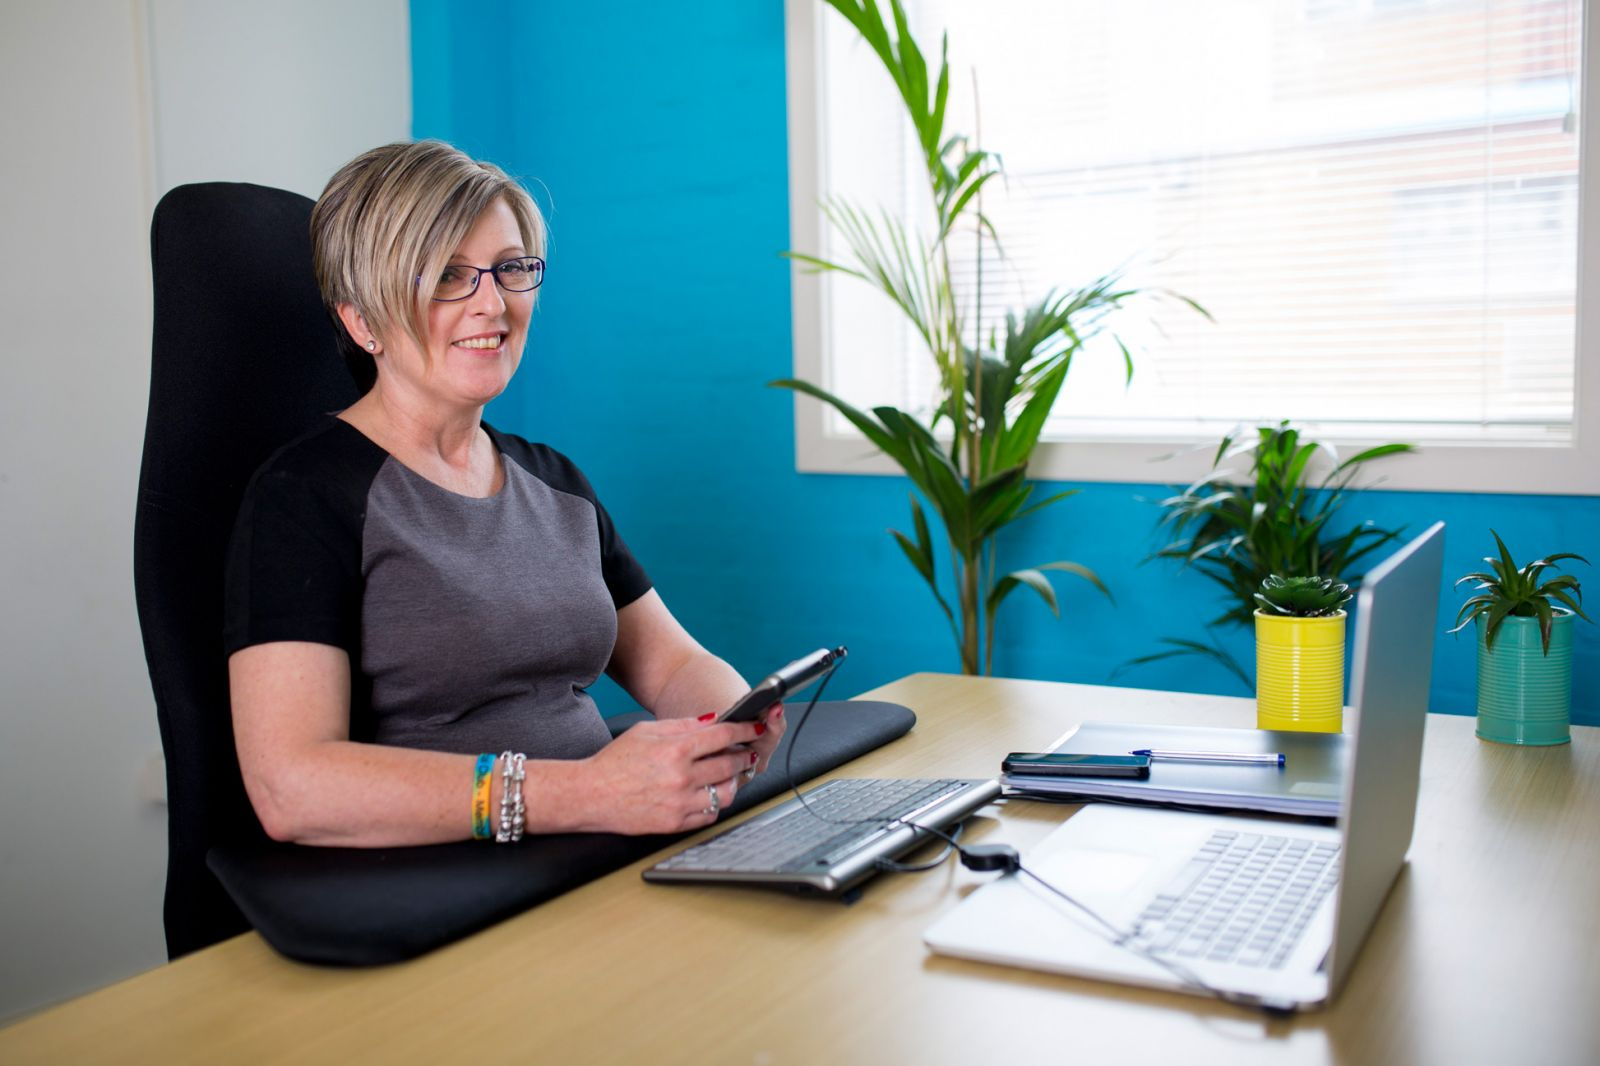 Woman using assistive technology